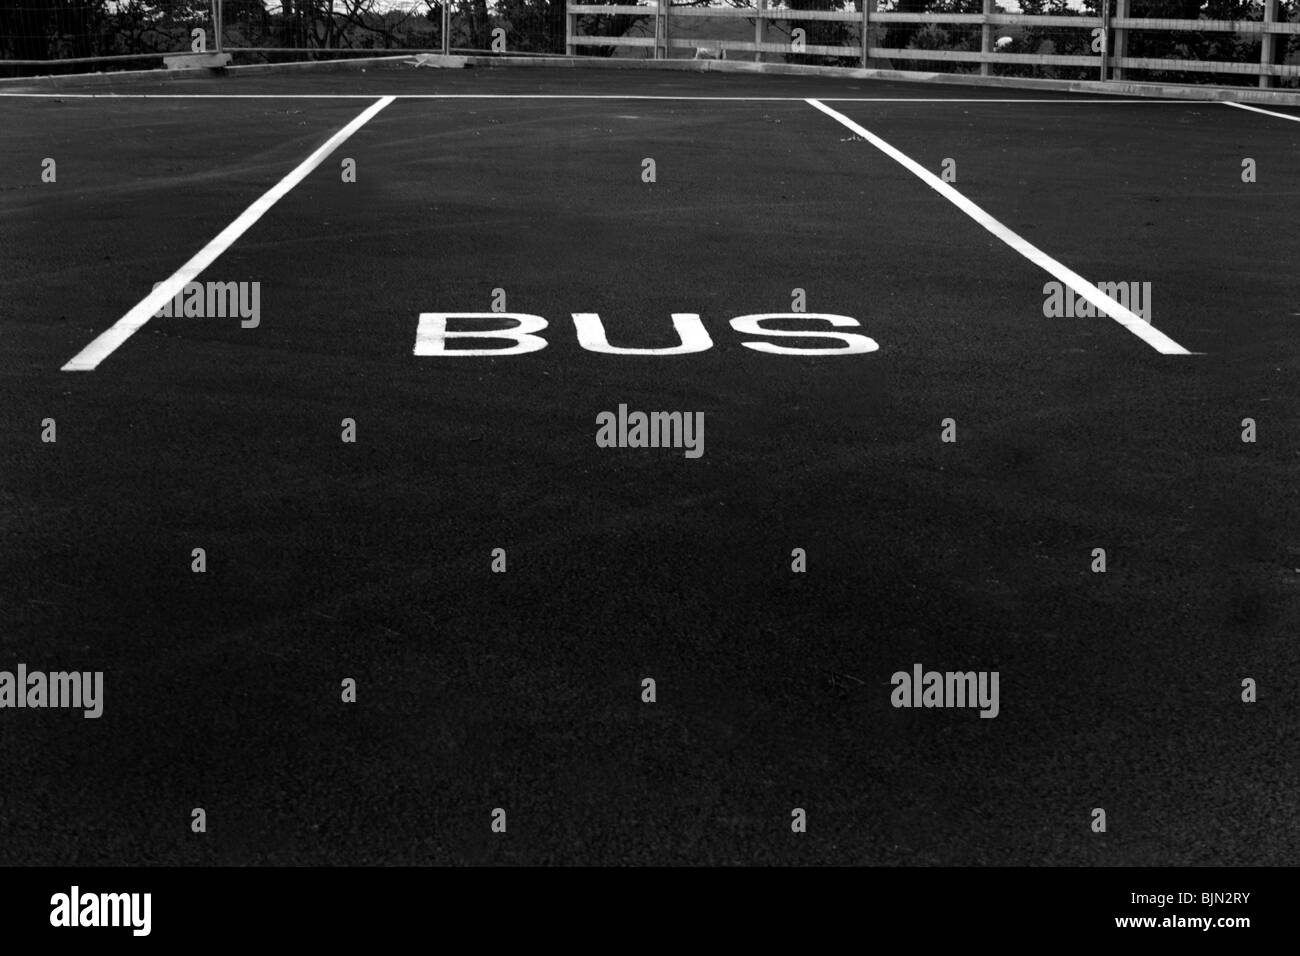 A space in Bus Parking lot - Stock Image